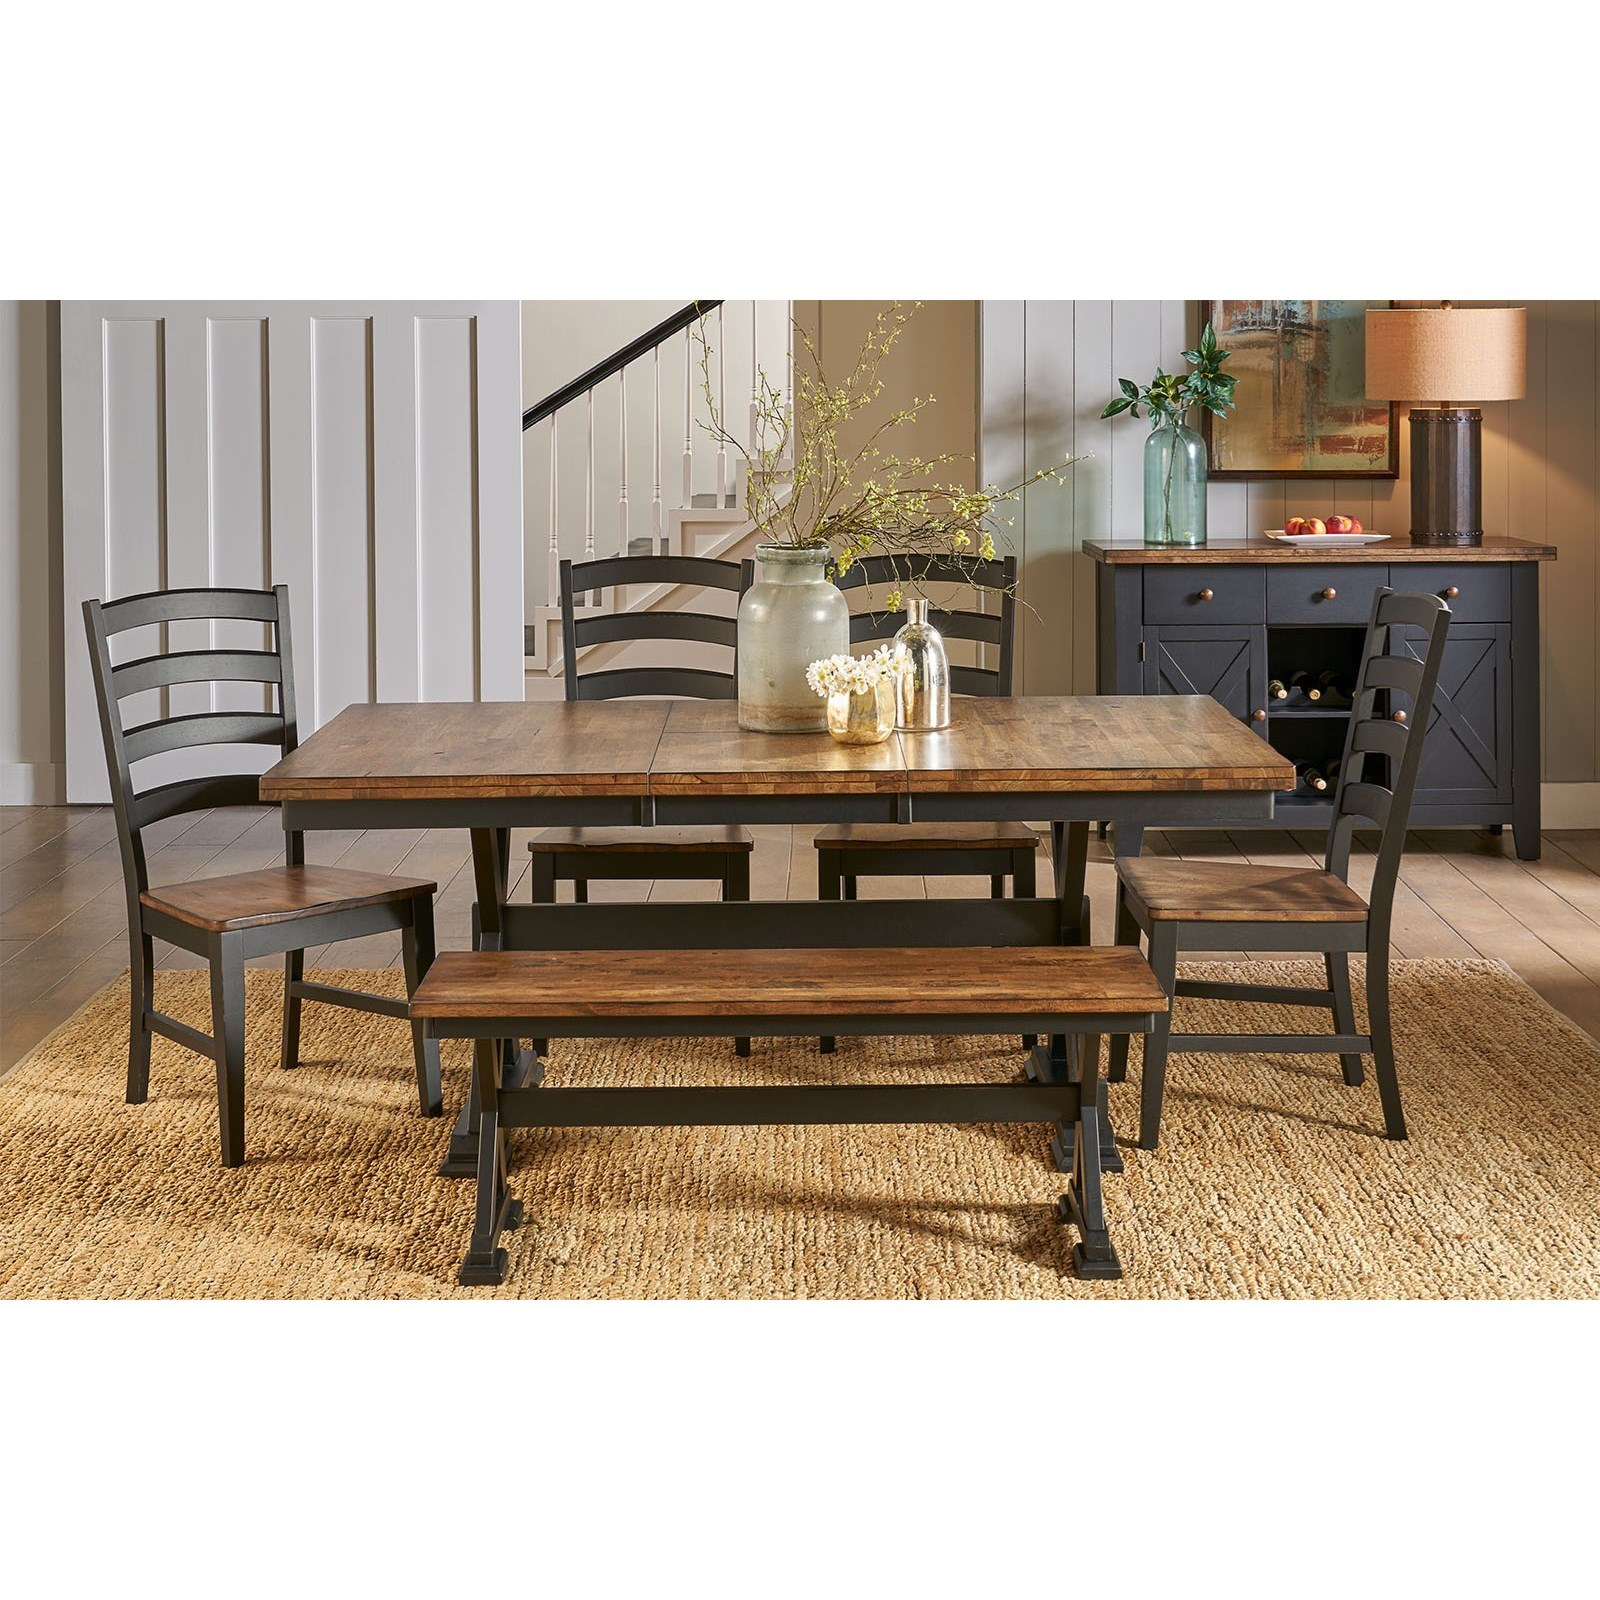 Stone Creek Table and Chair Set with Bench by A-A at Walker's Furniture